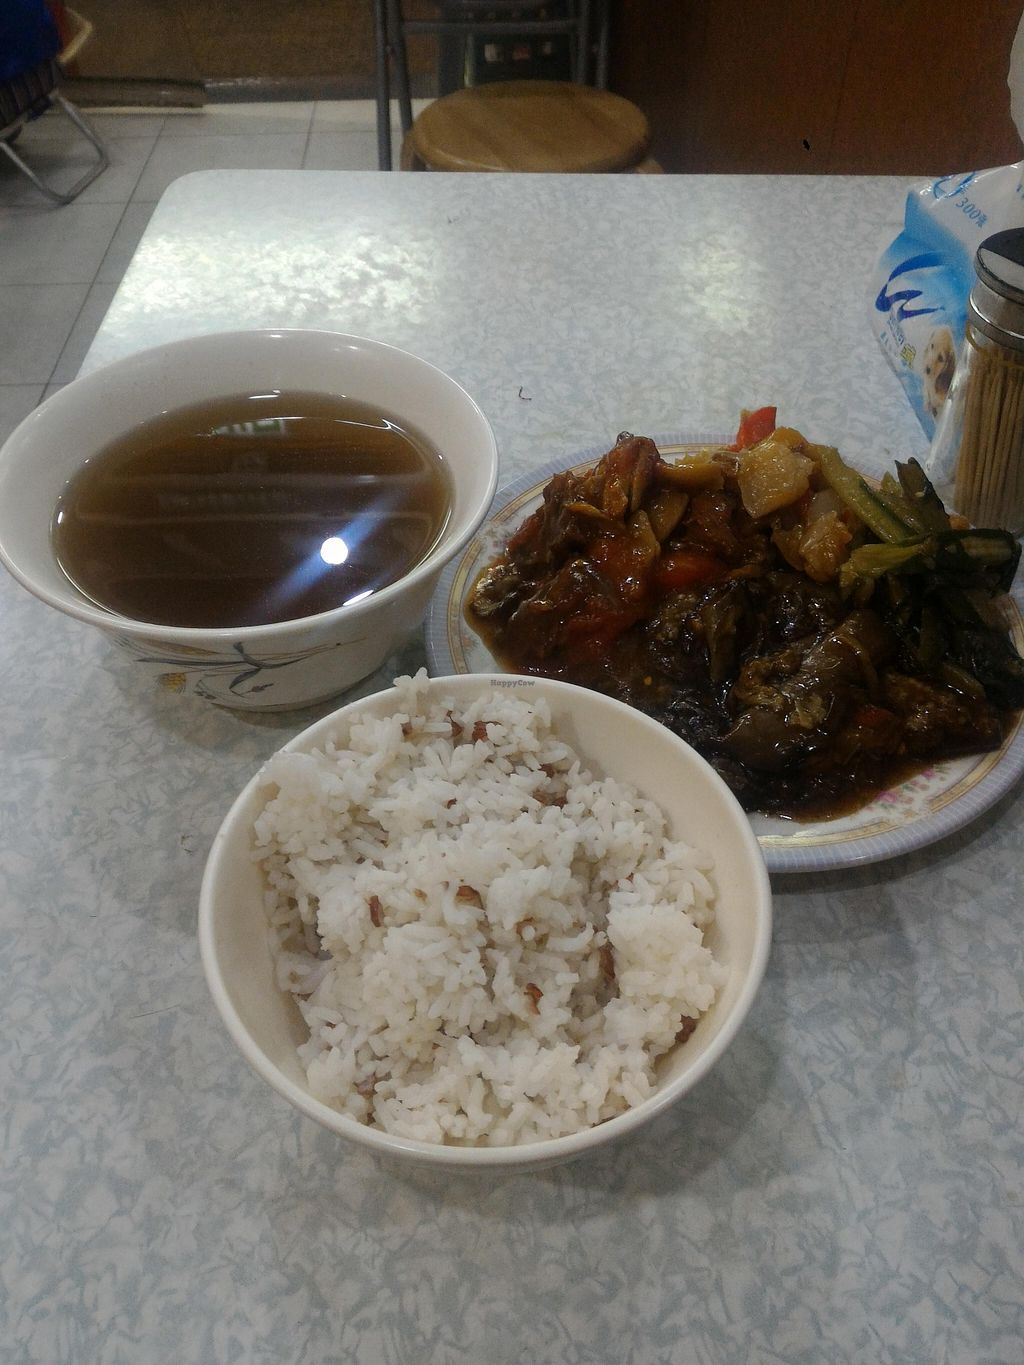 """Photo of Kam Heung Vegetarian - Fortress Hill  by <a href=""""/members/profile/ouikouik"""">ouikouik</a> <br/>hkd38 dinner <br/> October 12, 2015  - <a href='/contact/abuse/image/48002/121094'>Report</a>"""